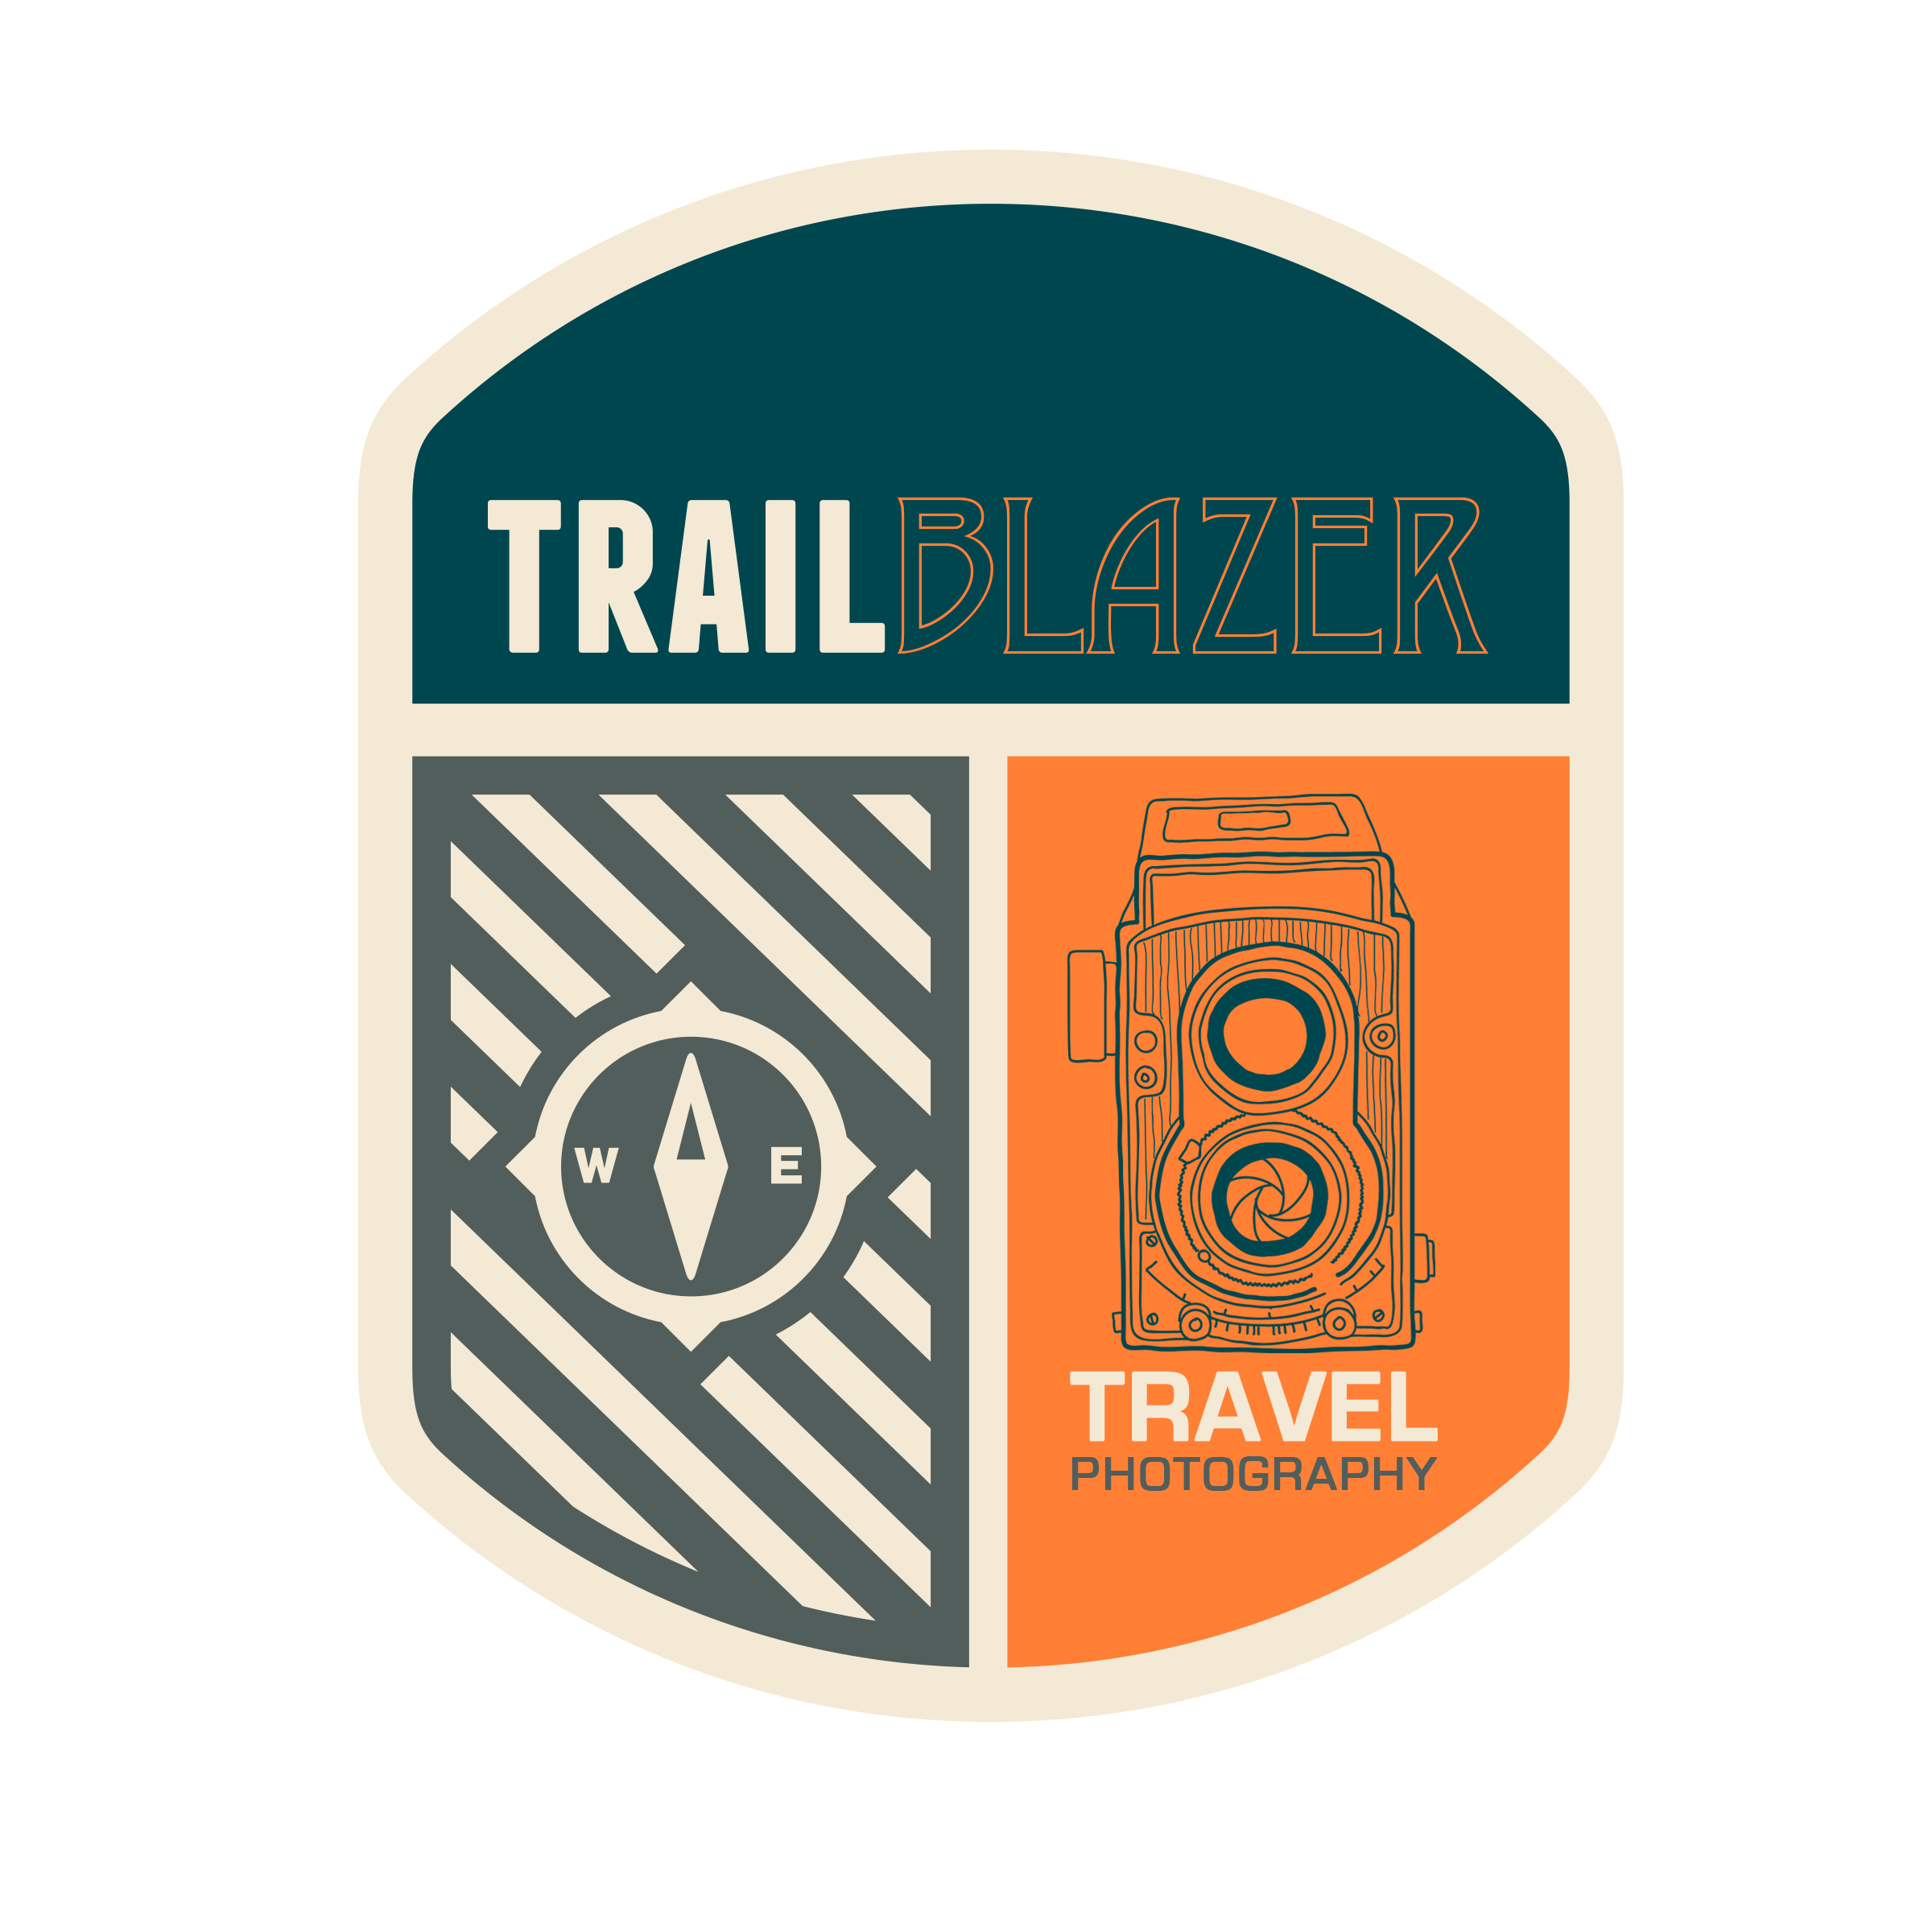 TrailBLAZER iconv3